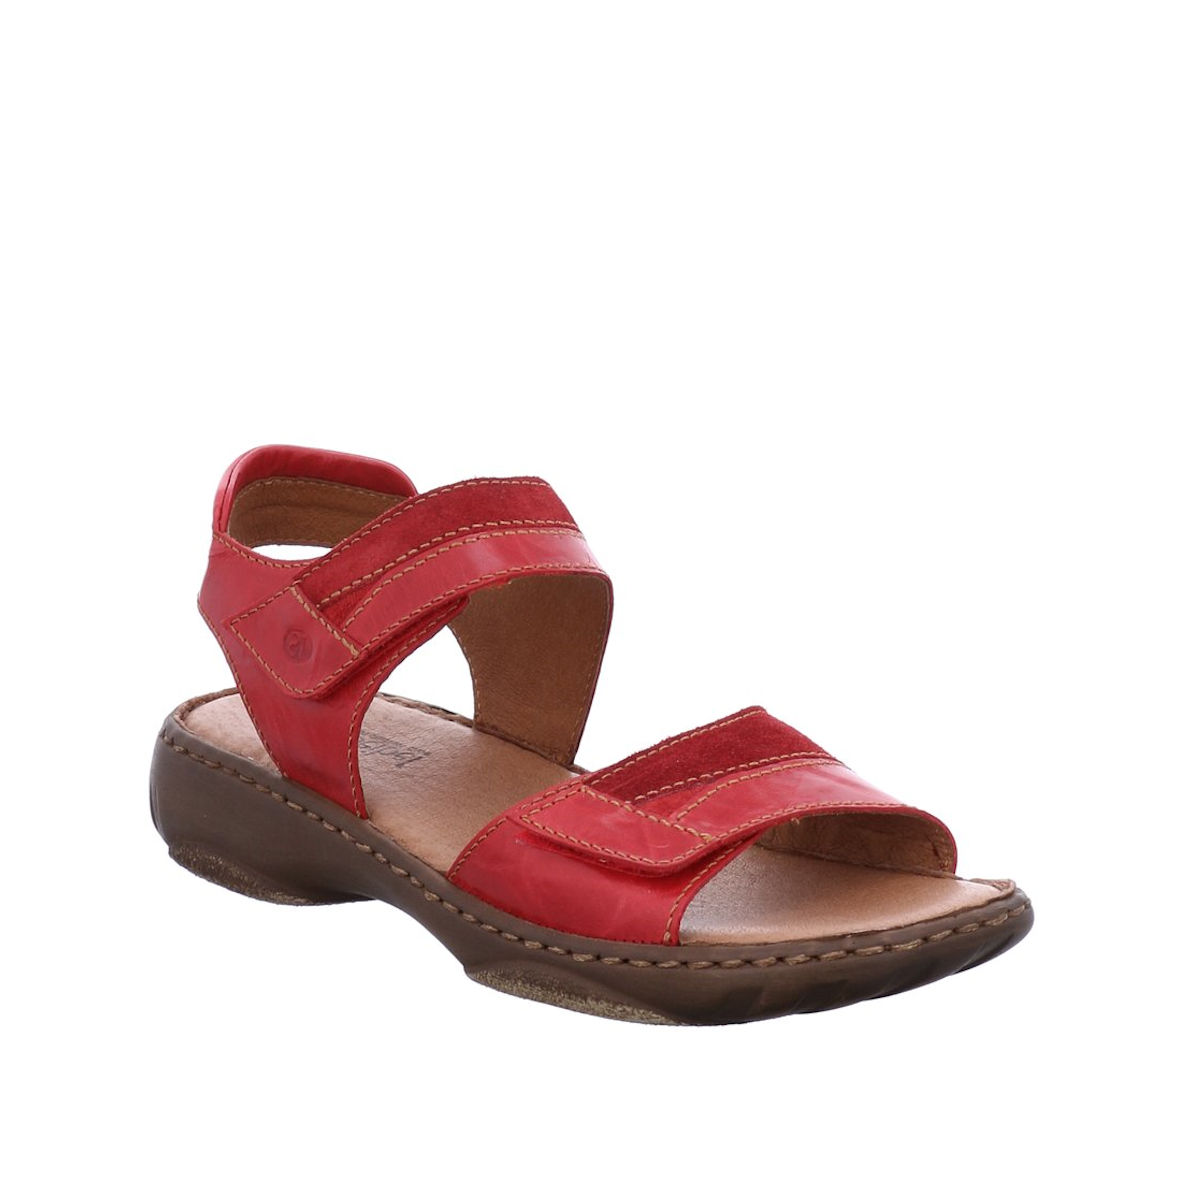 Josef Seibel Debra 19 - Womens Adjustable Red Leather Sandal